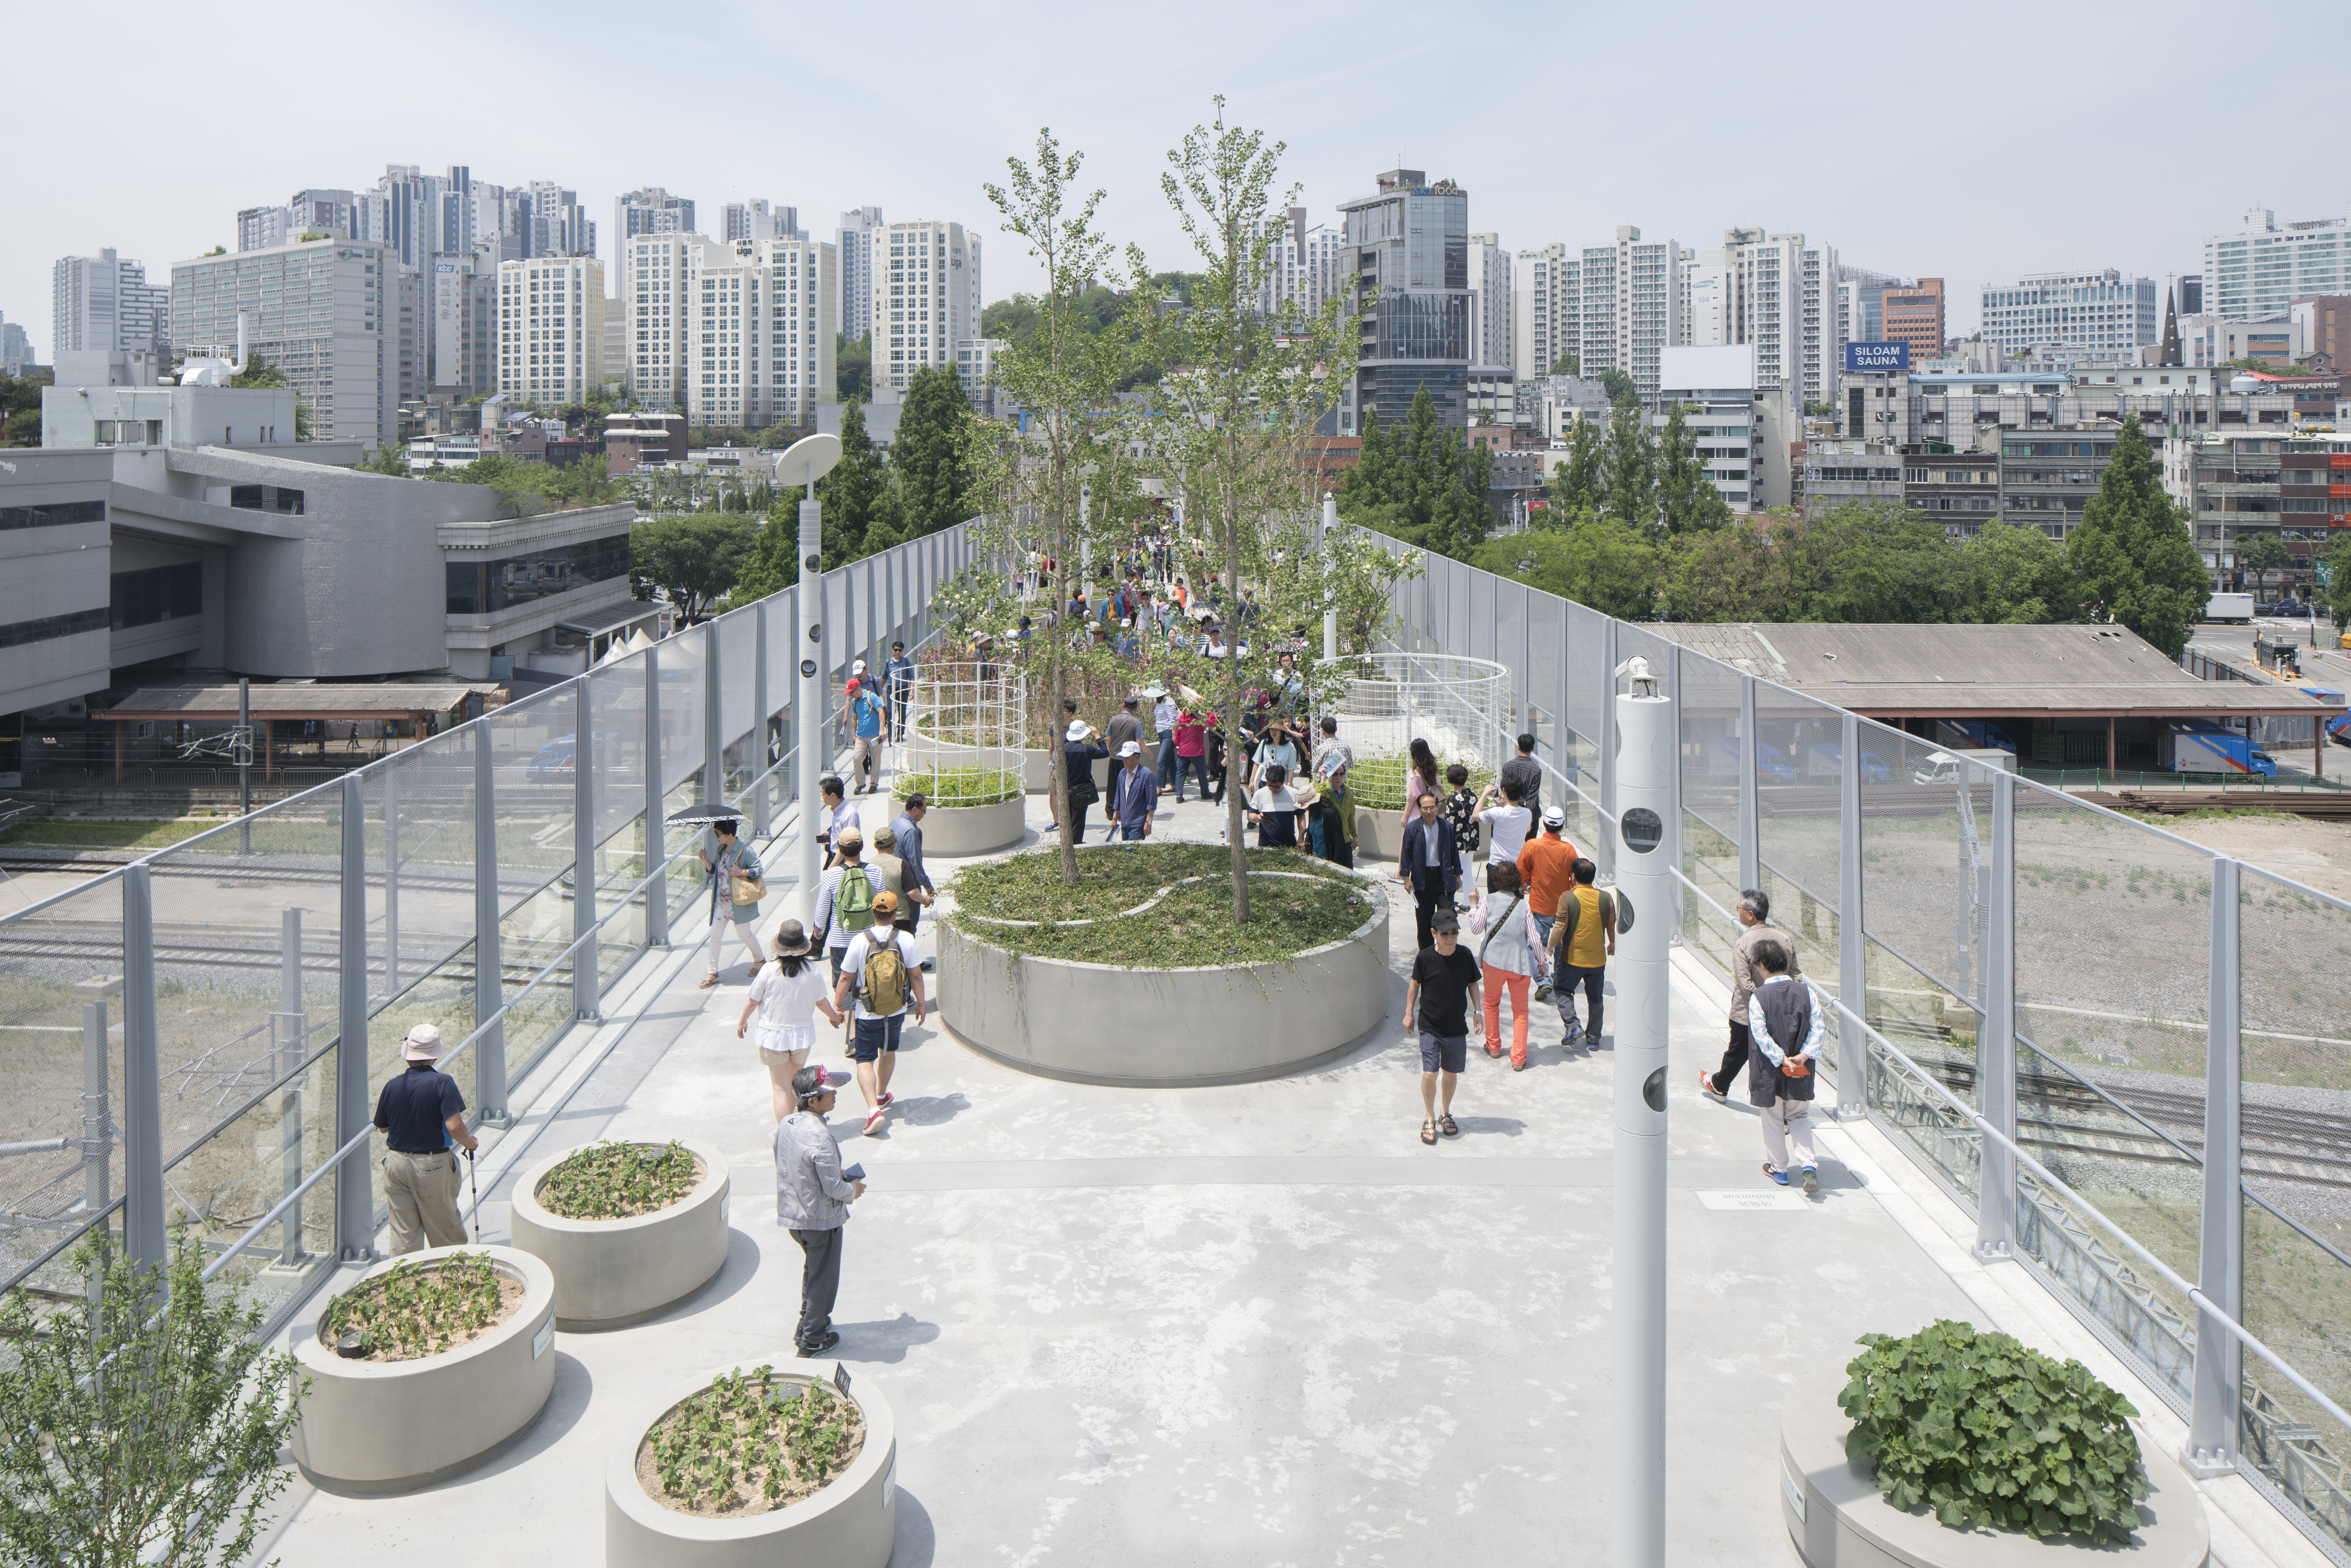 Old Highway Becomes Public Park With 24 000 Plants In